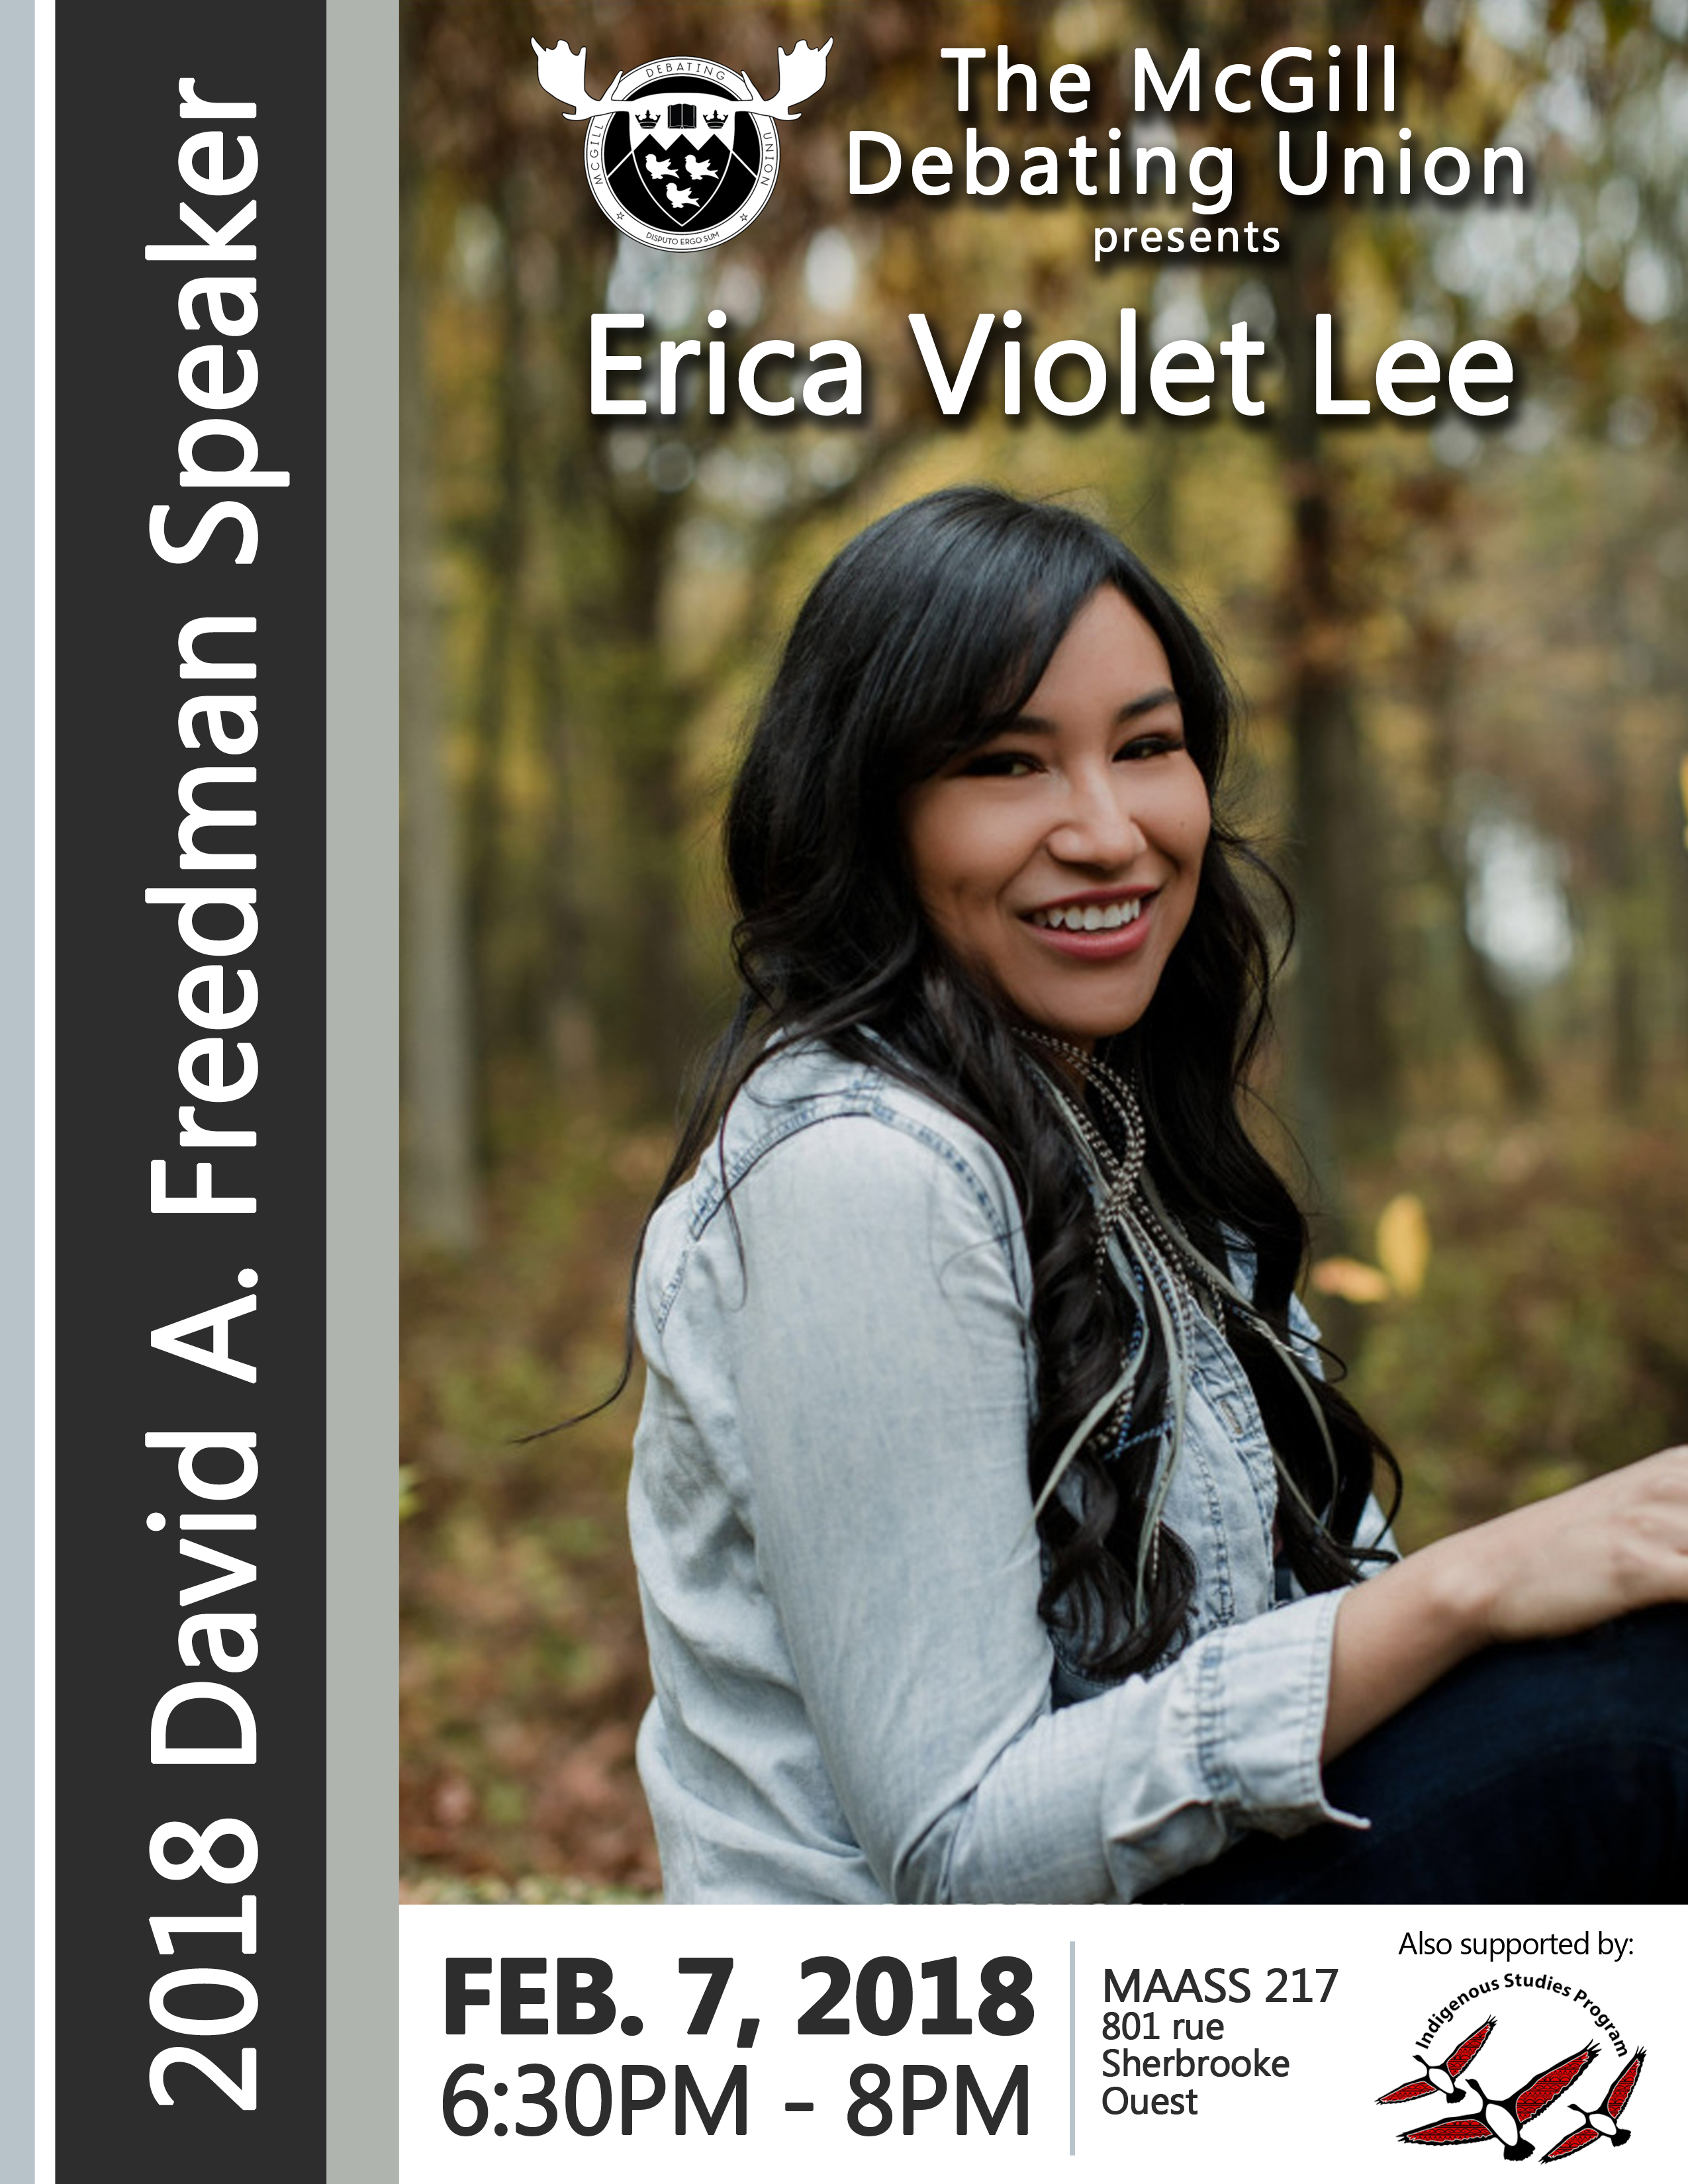 Erica Violet Lee at McGill: The McGill Debating Union Presents